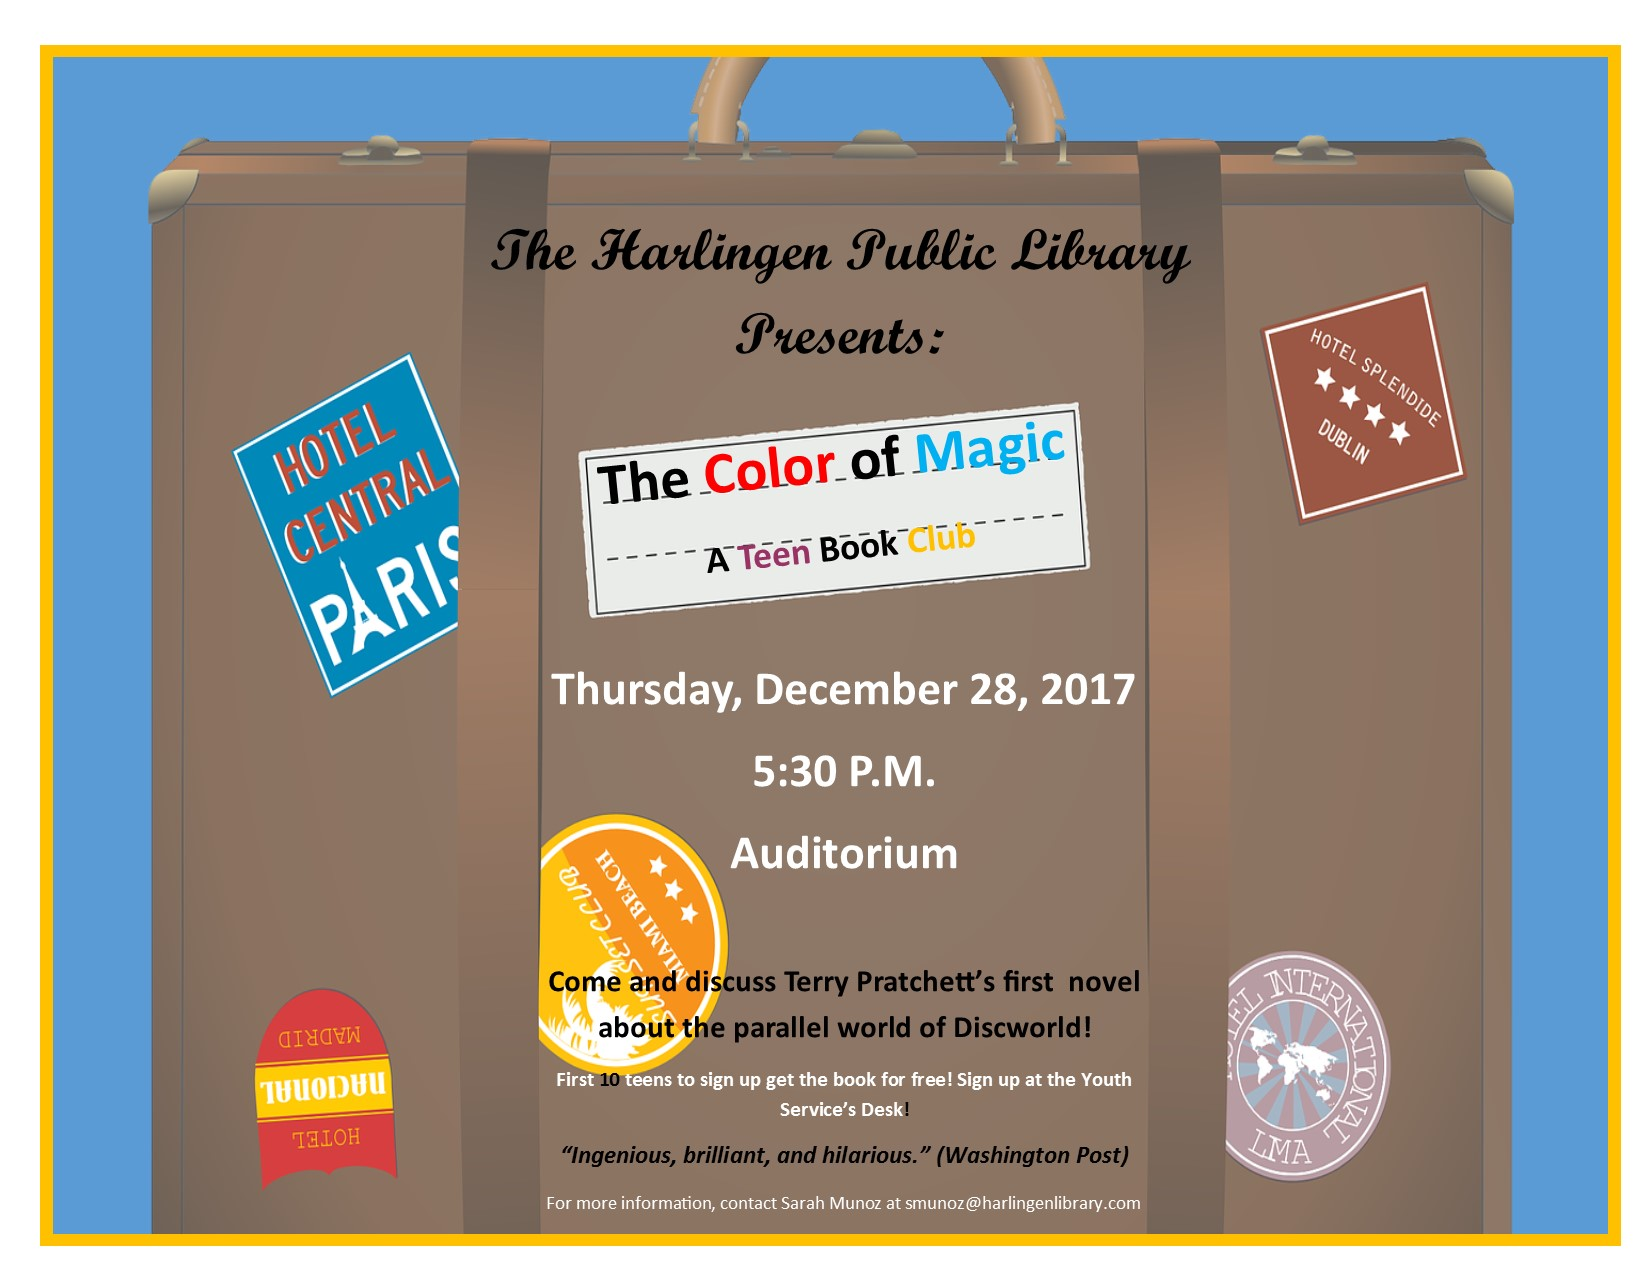 The Color of Magic book club – Harlingen Public Library